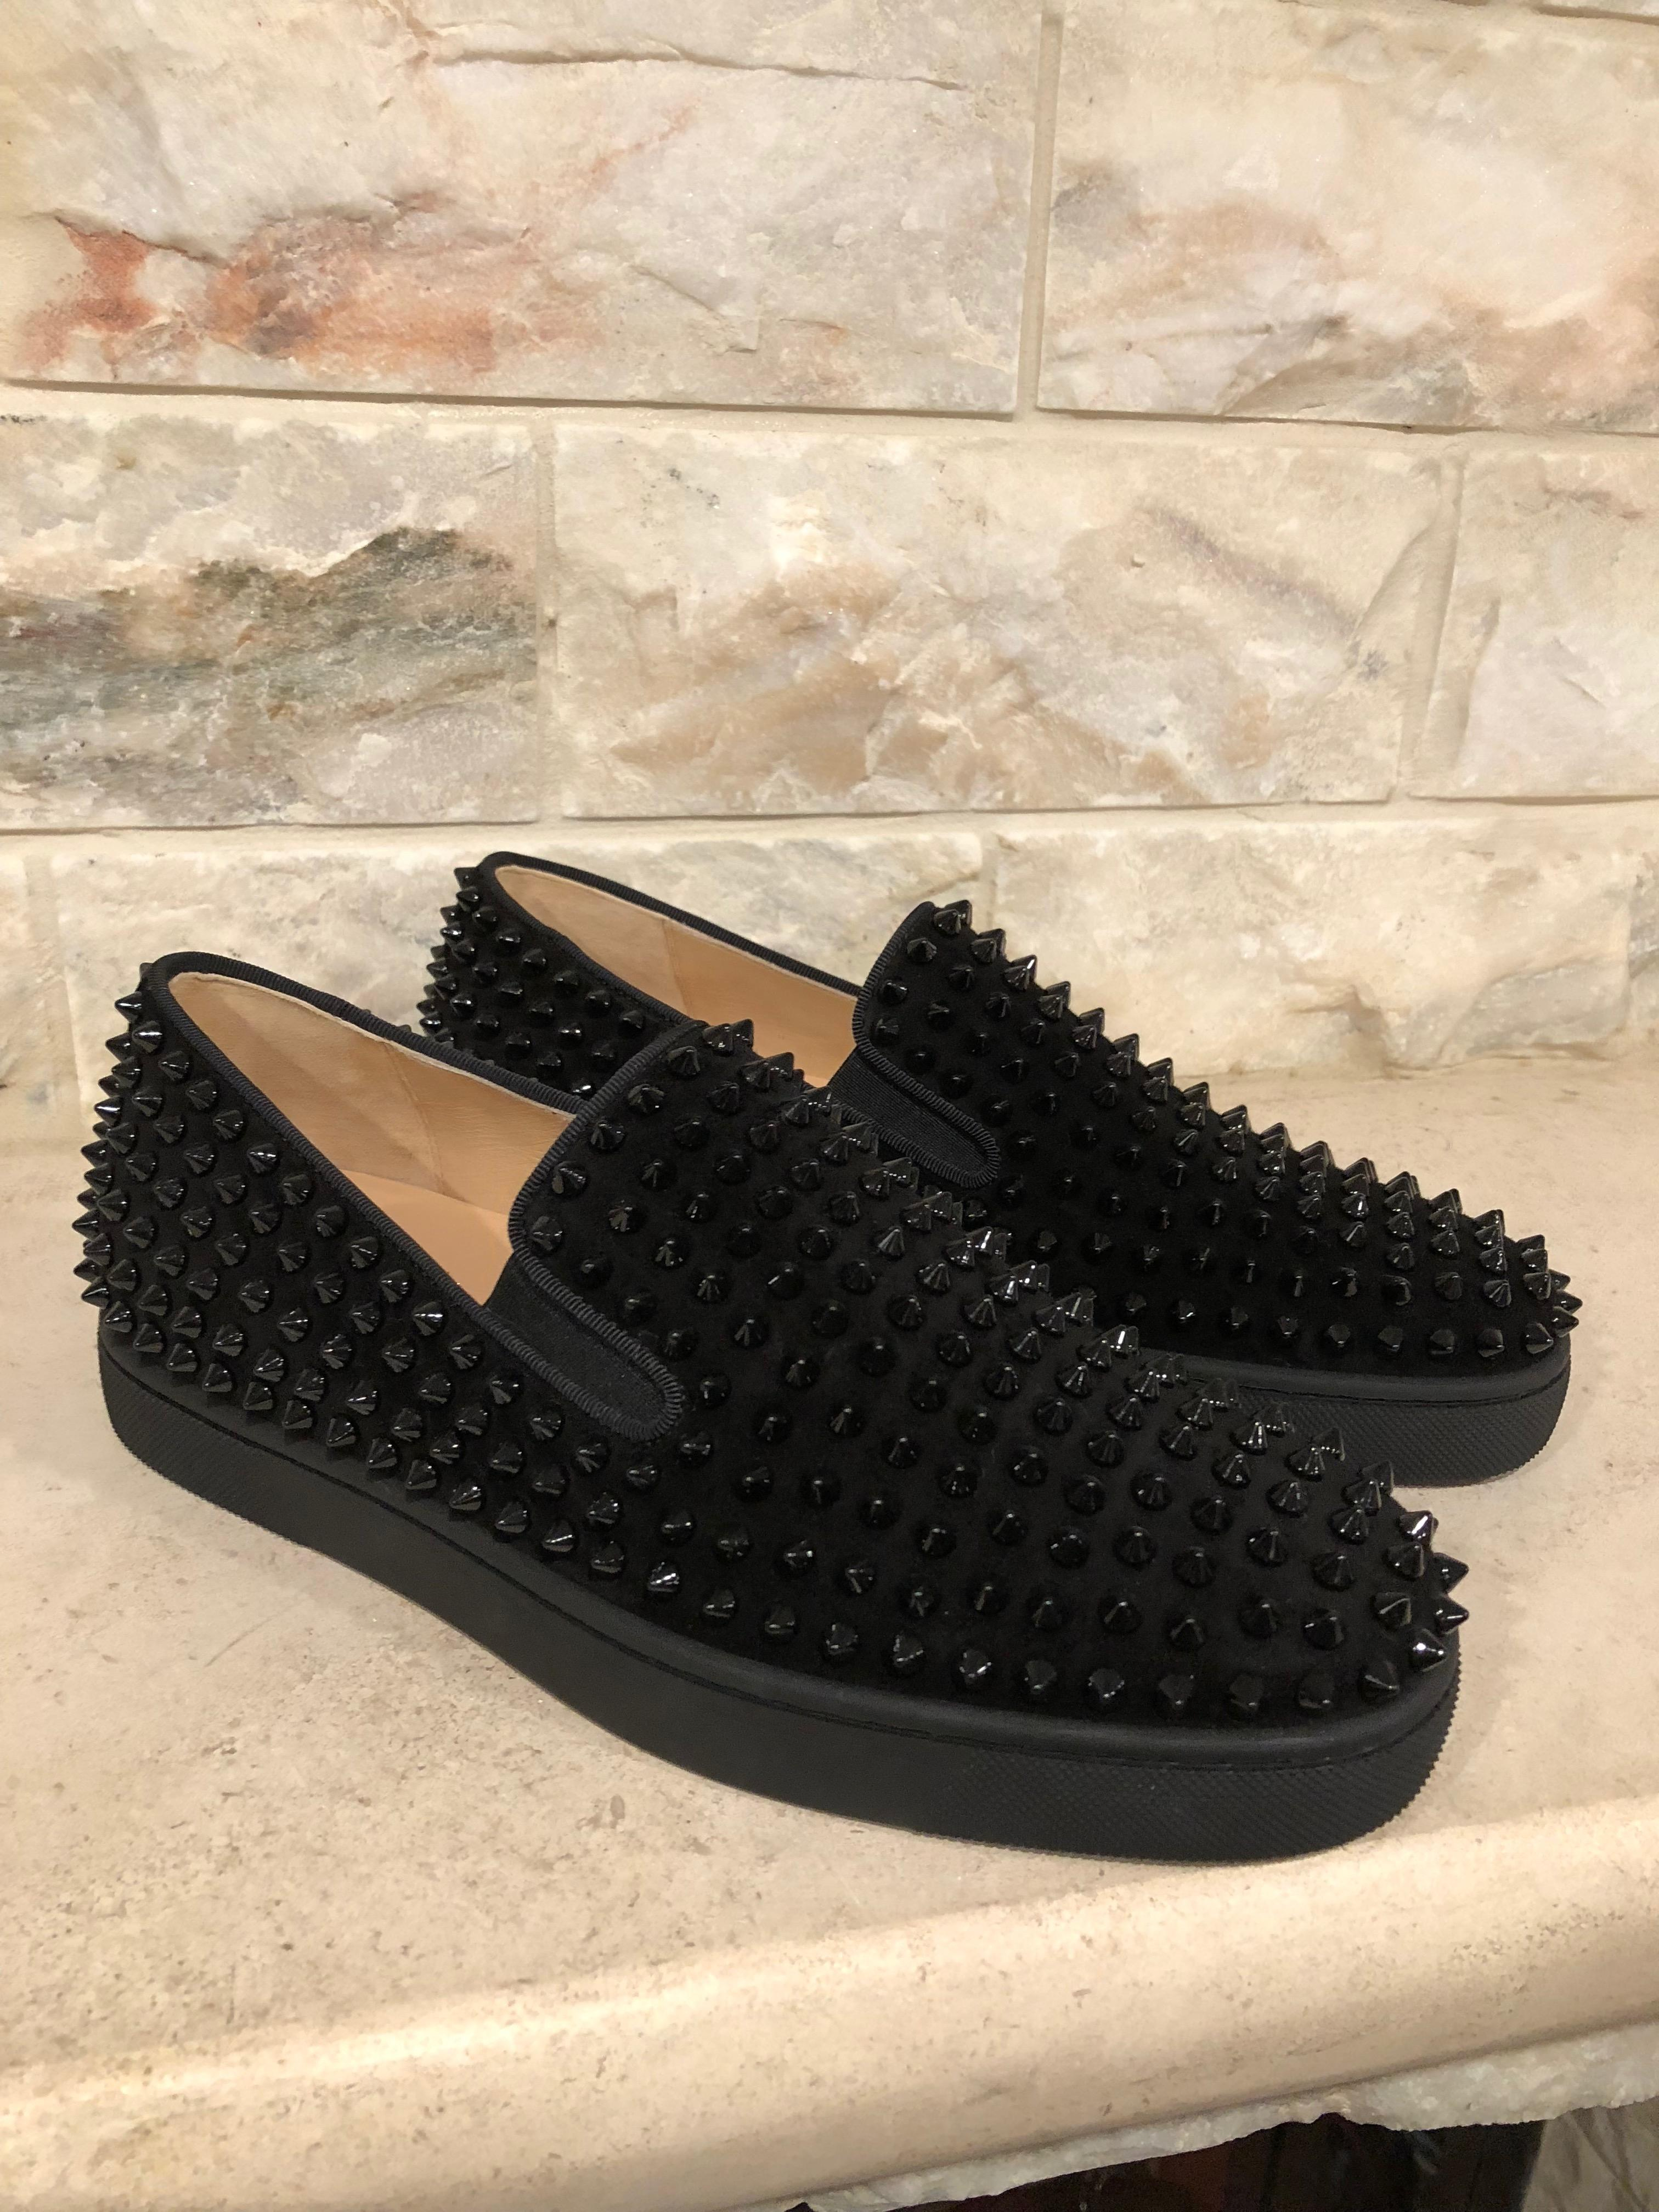 buy popular 1d0ab 7002f czech christian louboutin black suede sneakers 0d432 ae803